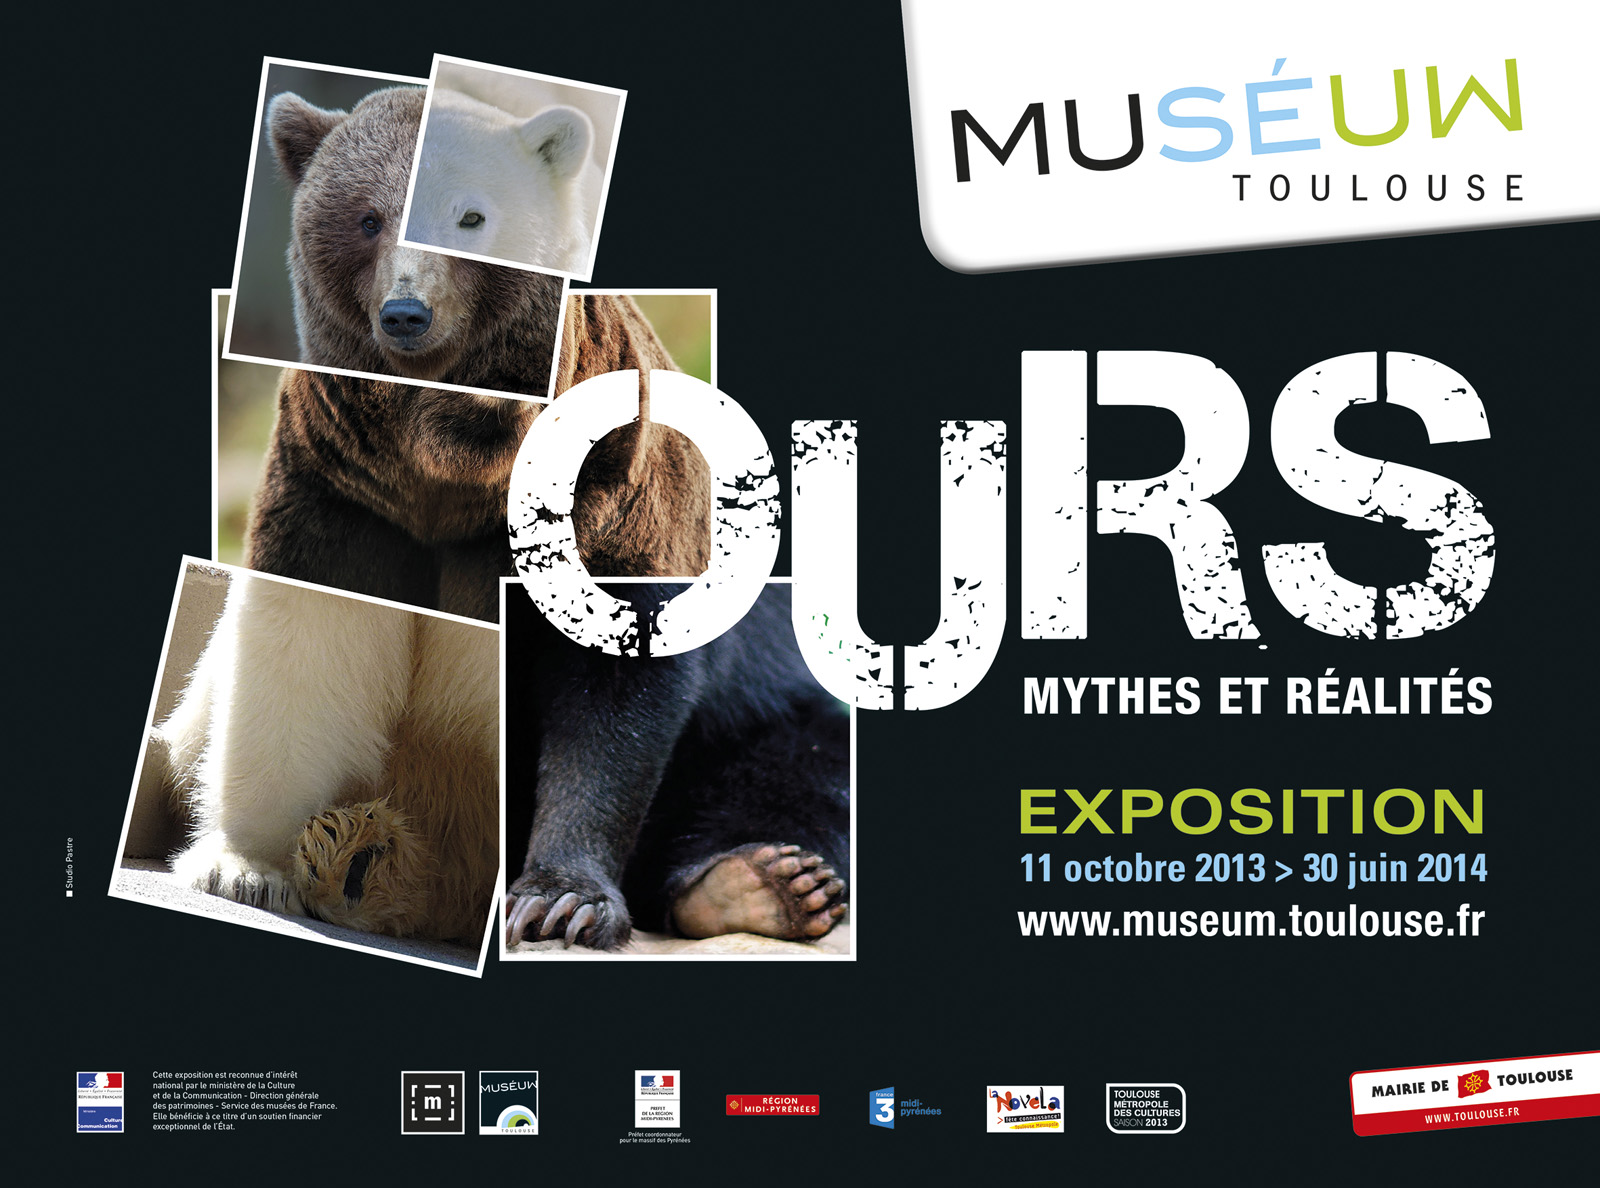 http://www.museum.toulouse.fr/